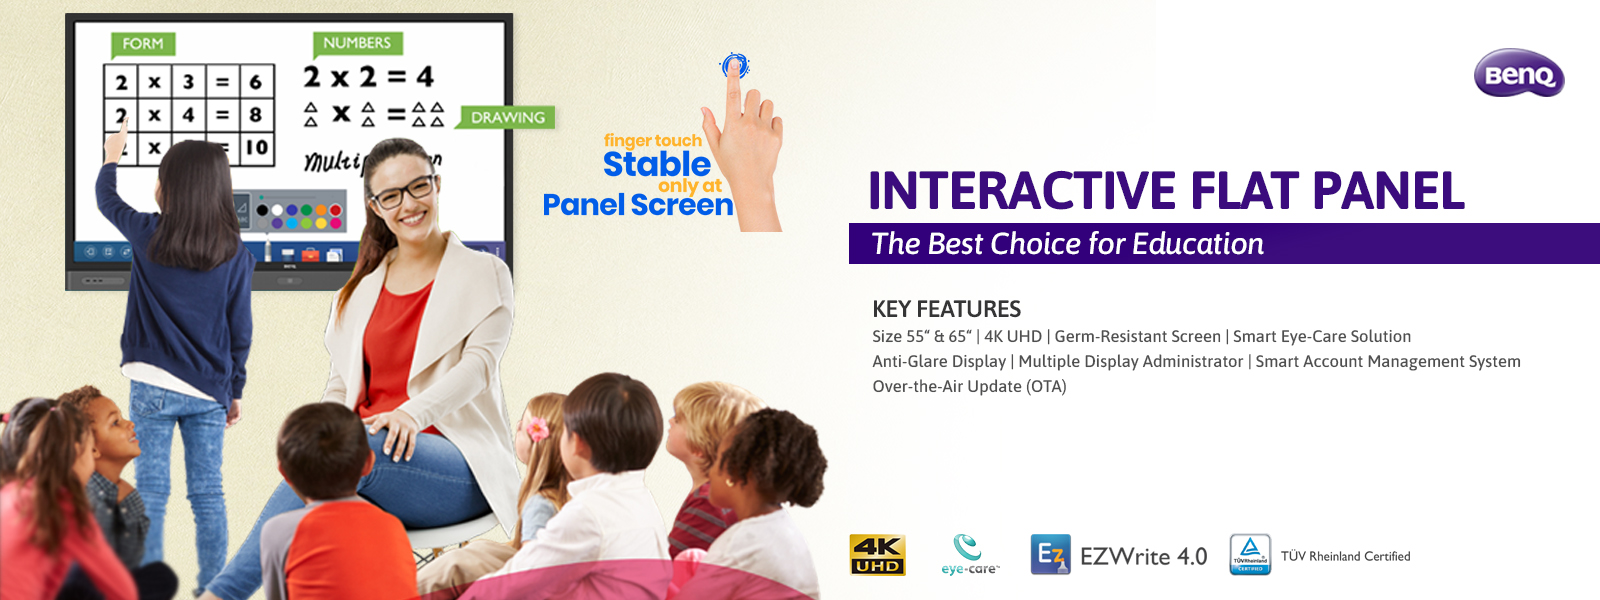 benq interactive flat panel for education slider